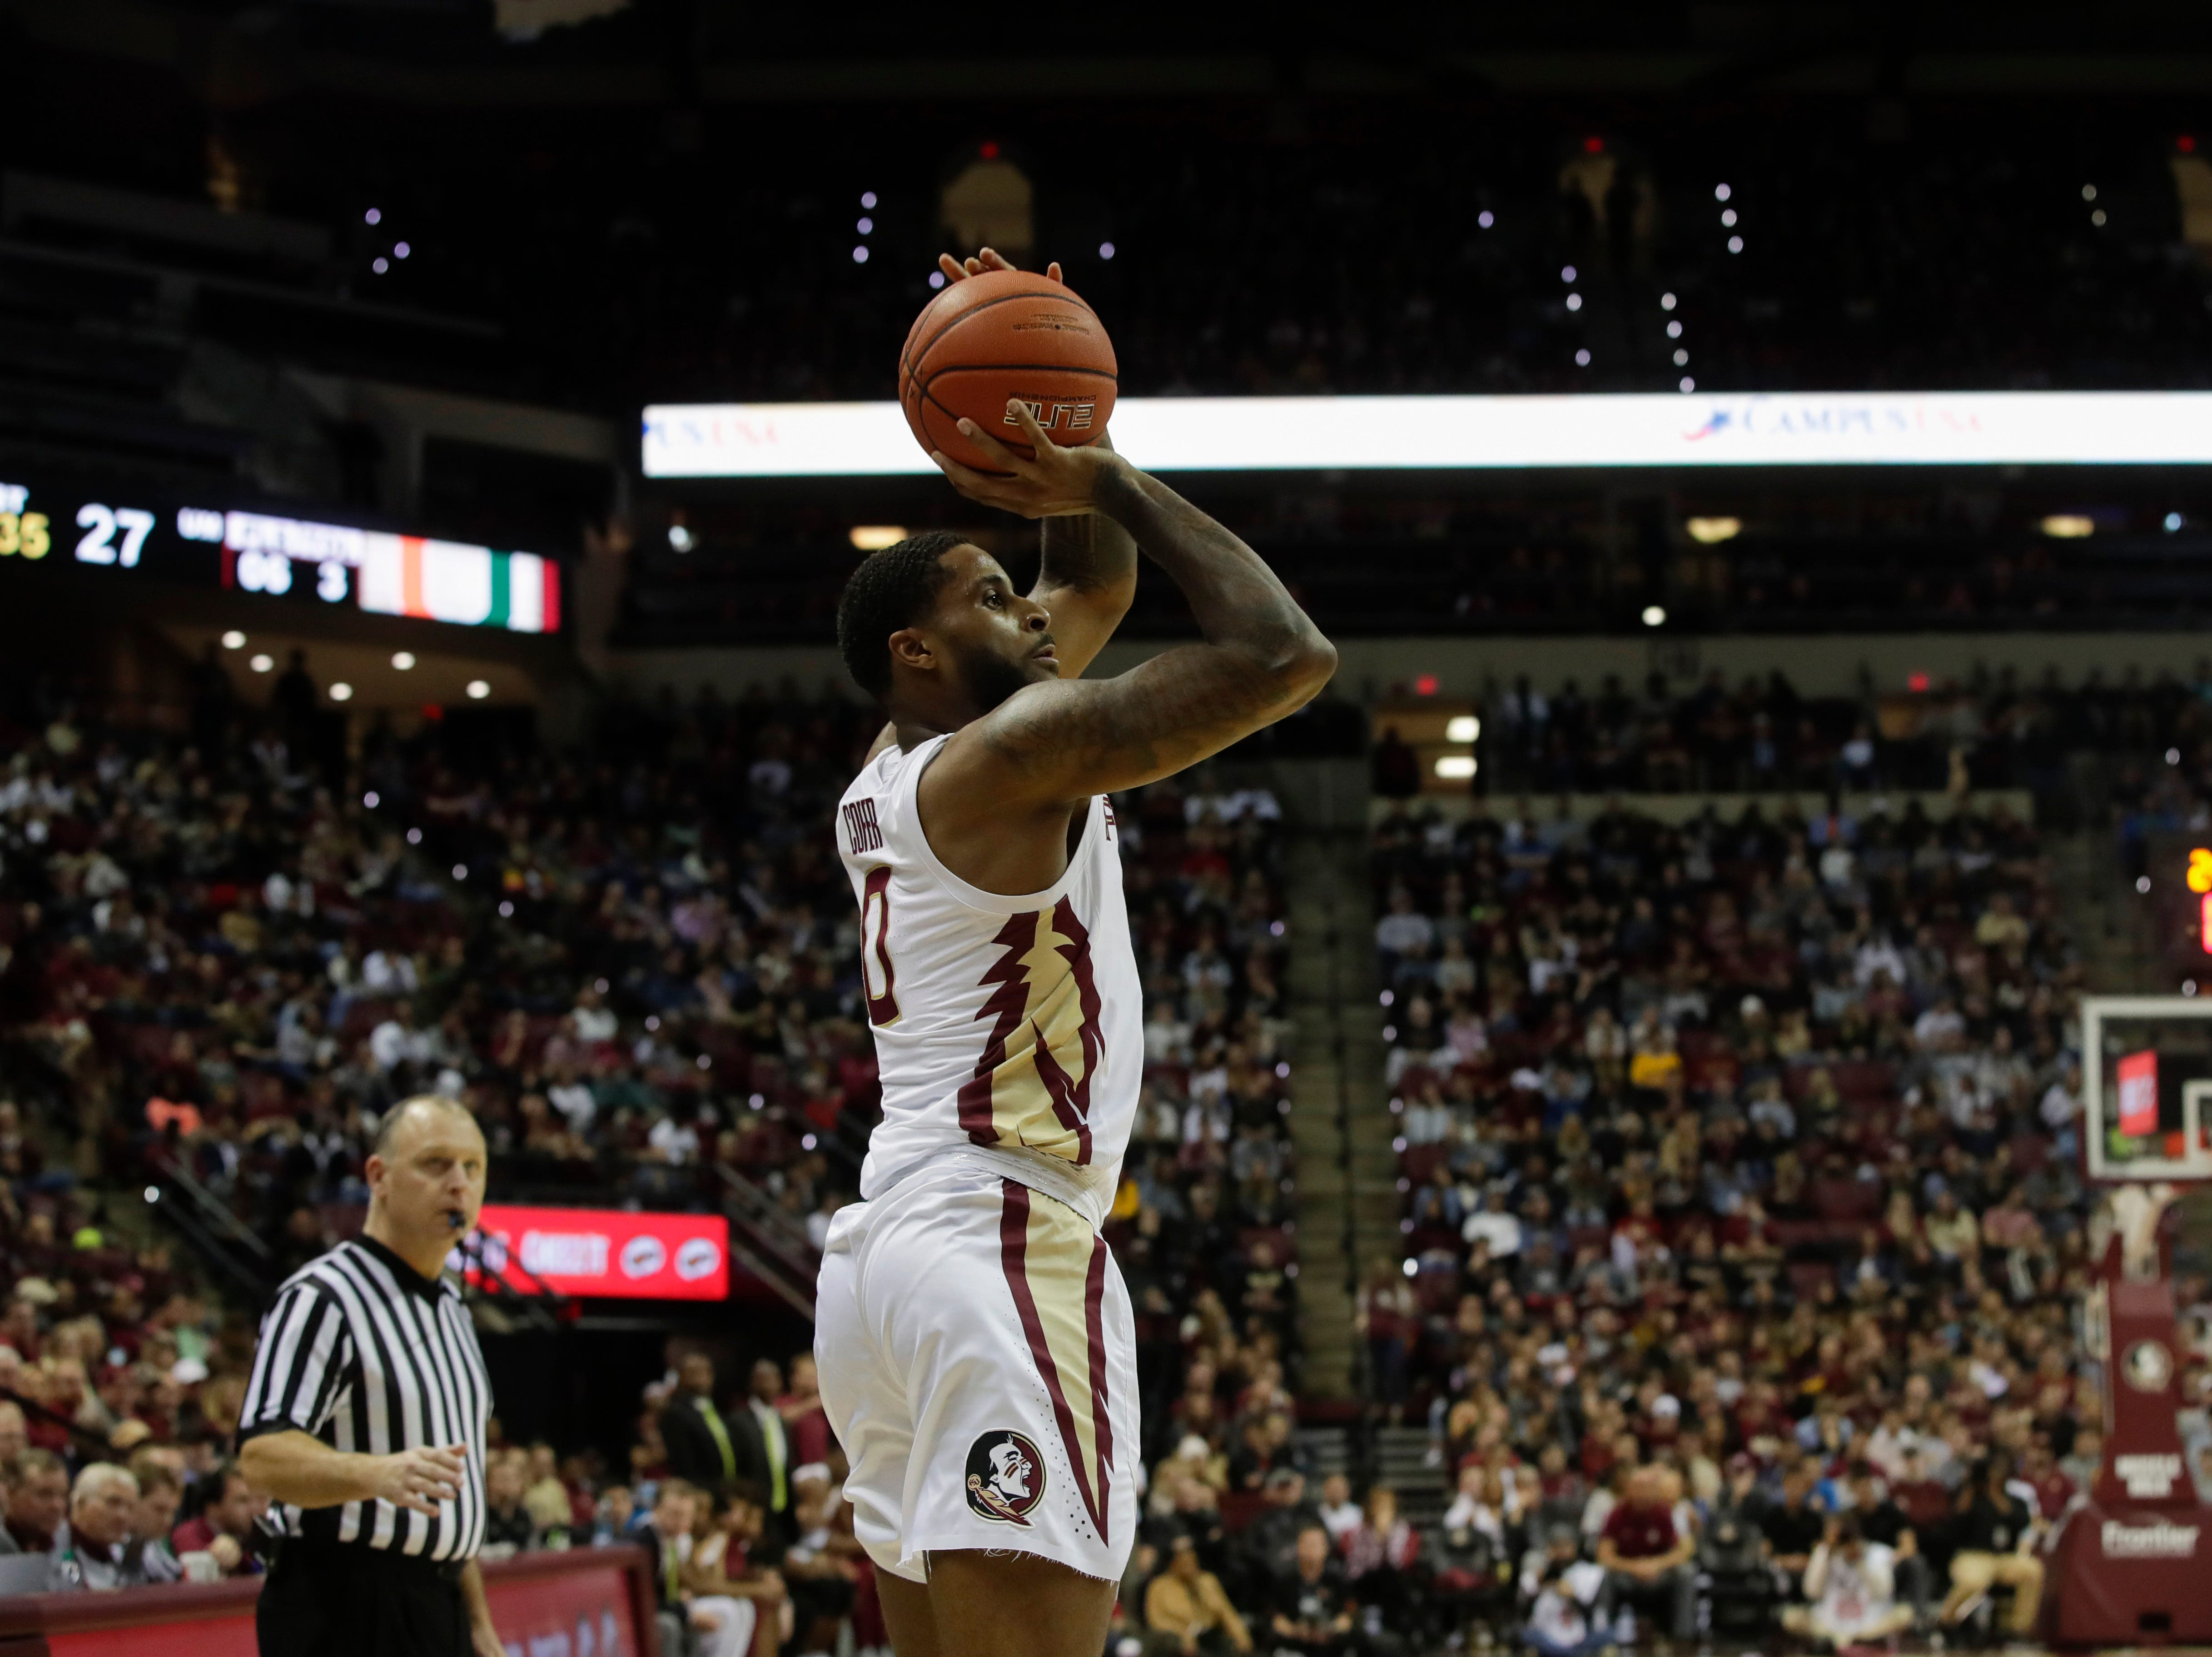 Florida State Seminoles forward Phil Cofer (0) shoots a jumper during a game between FSU and University of Miami Wednesday, Jan. 9, 2019.